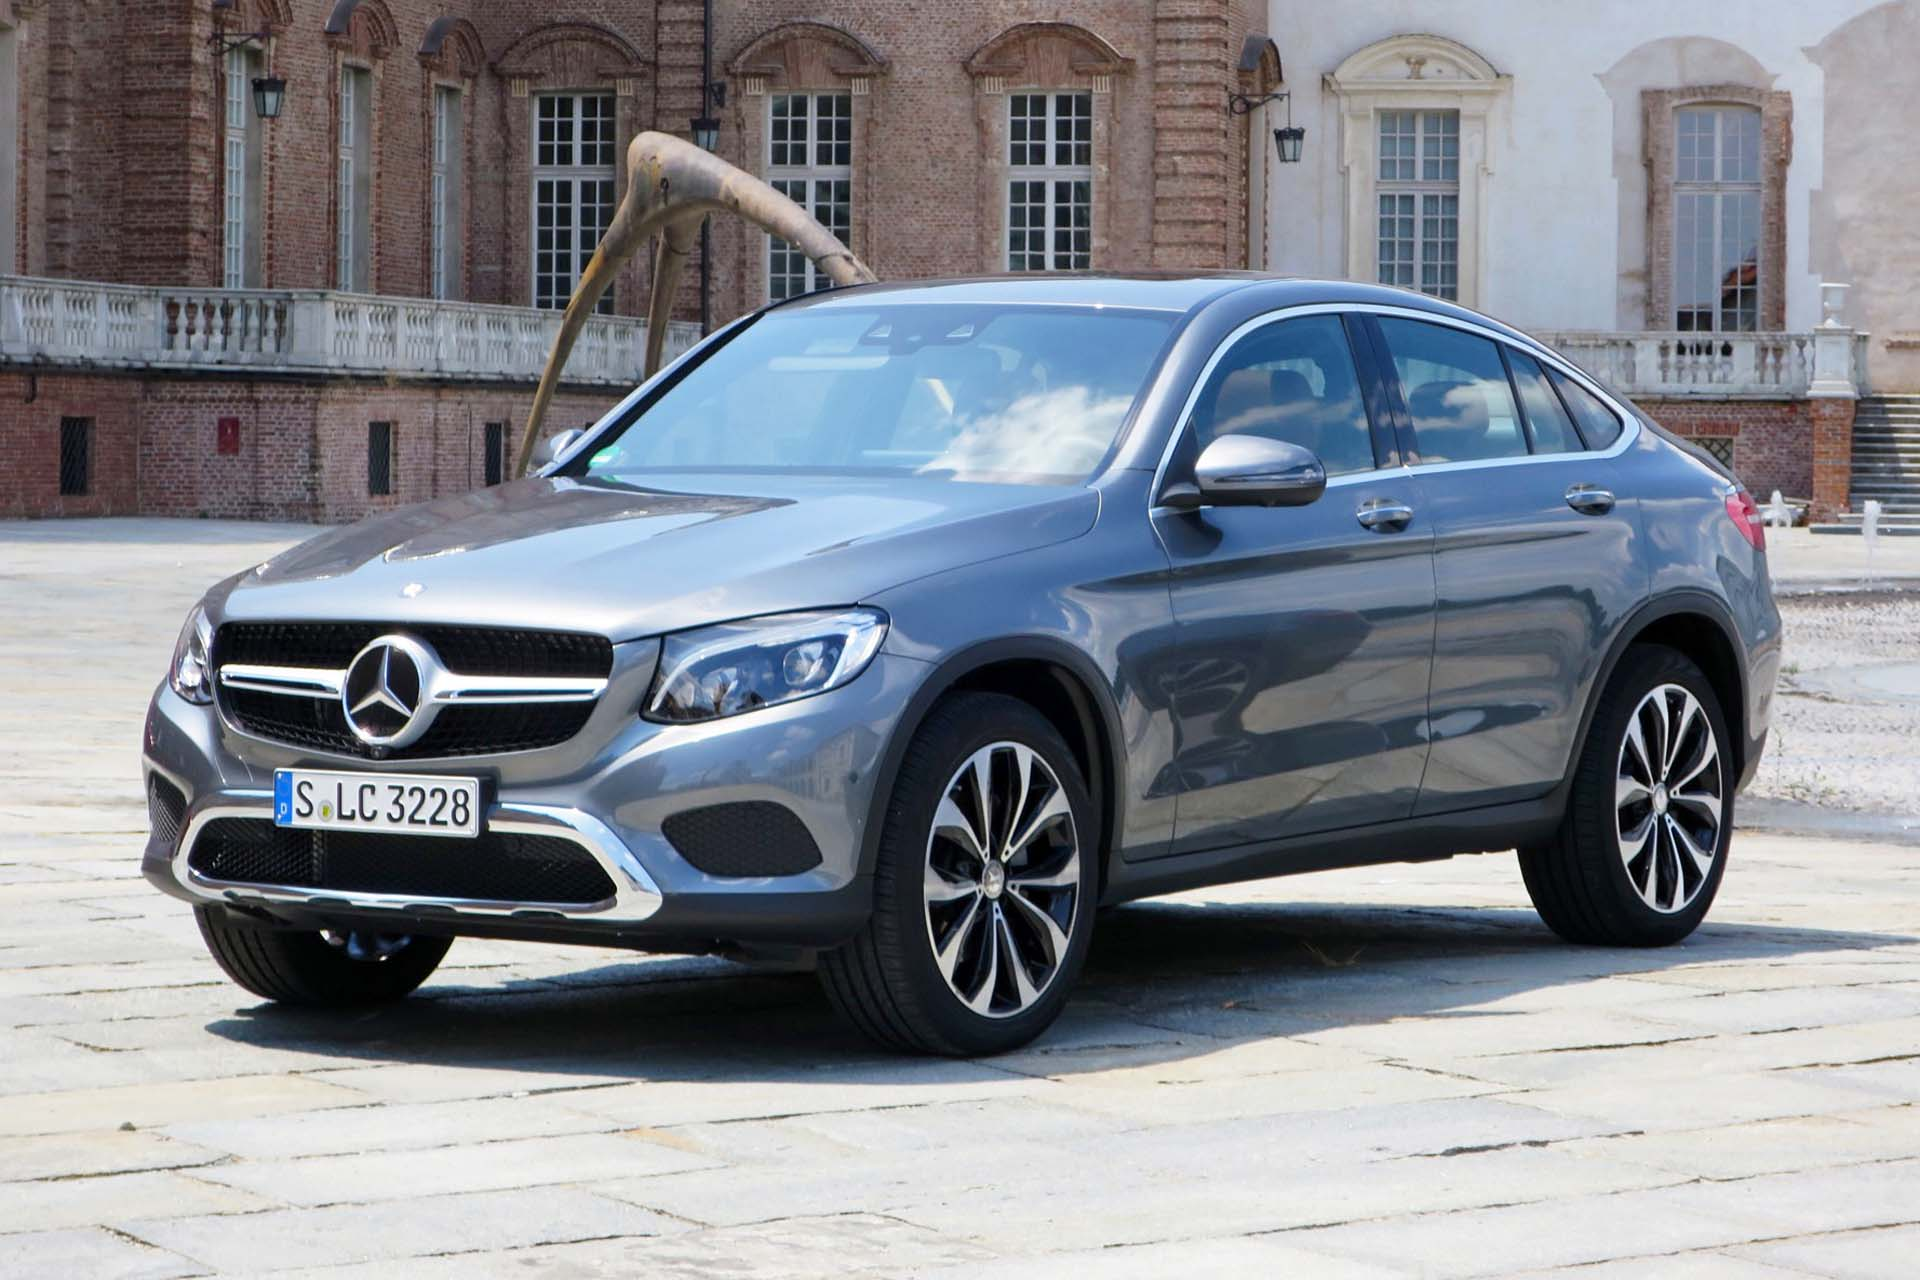 02-PW-2017-Mercedes-Benz-GLC-300-Coupe